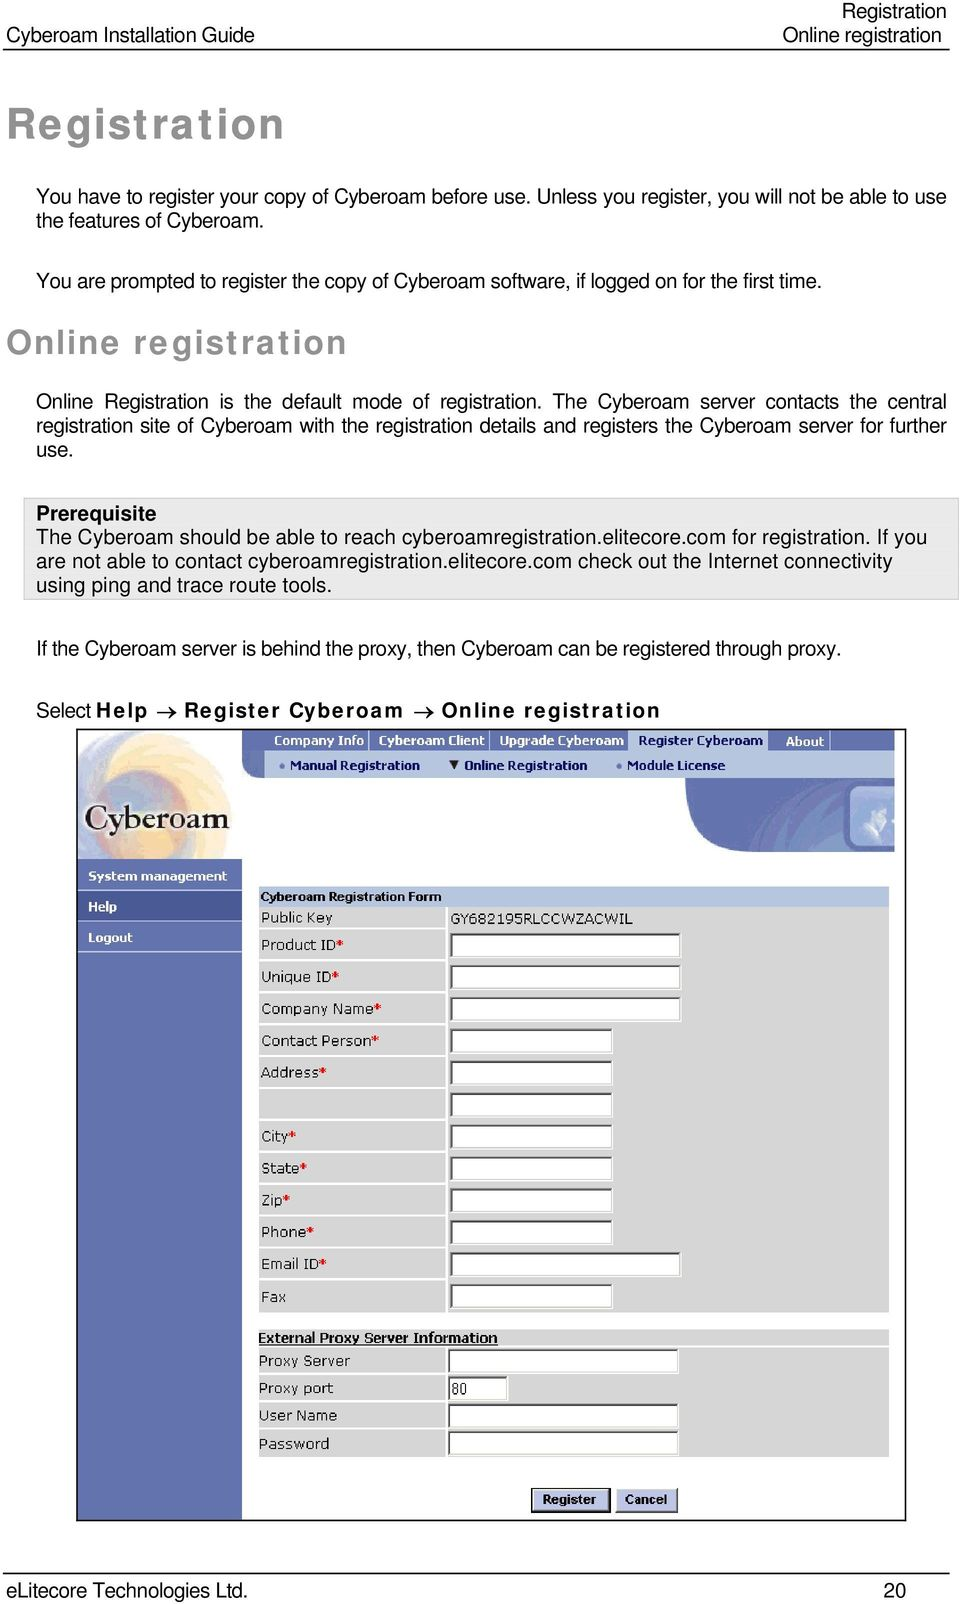 The Cyberoam server contacts the central registration site of Cyberoam with the registration details and registers the Cyberoam server for further use.